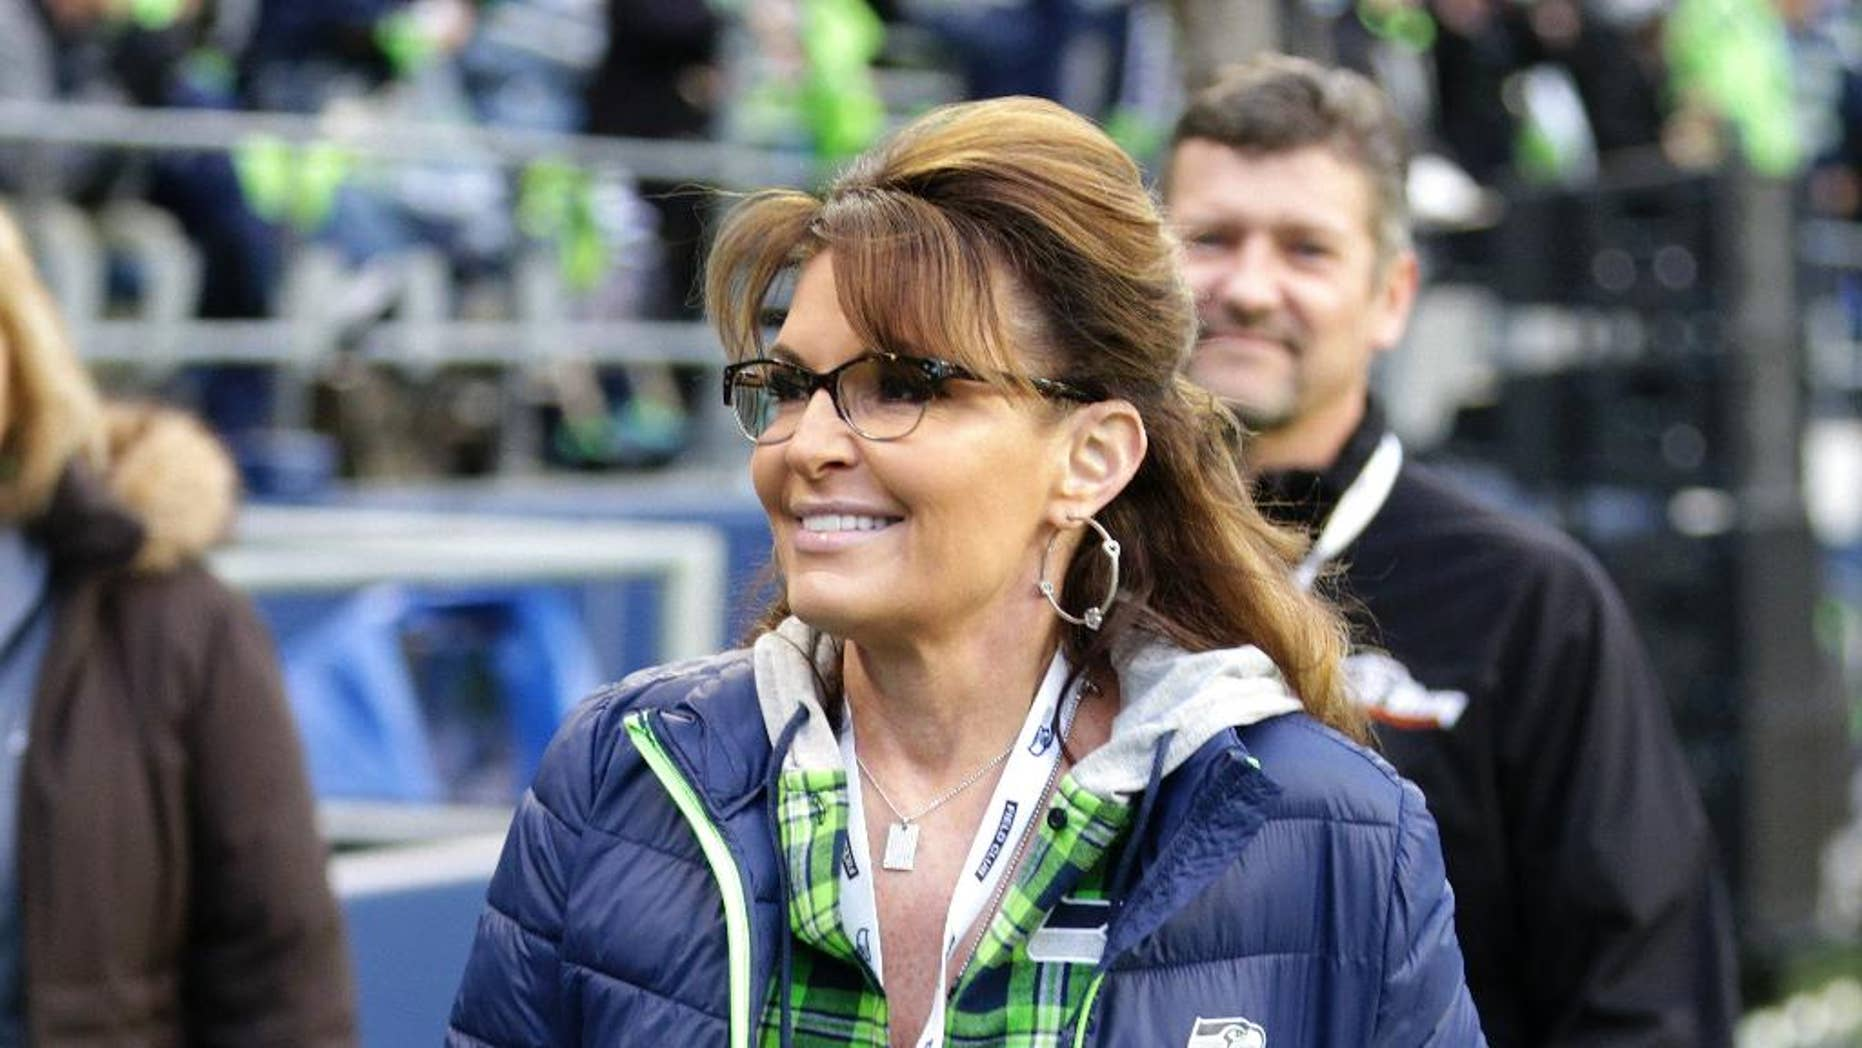 """FILE - In a Thursday, Dec. 15, 2016 file photo, Sarah Palin, political commentator and former governor of Alaska, walks on the sideline before an NFL football game between the Seattle Seahawks and the Los Angeles Rams, in Seattle. A story posted by Newslo on Jan. 6, 2017, claiming Palin blamed recent fatal shooting at a Florida airport on """"Mexican Muslims"""" is false. (AP Photo/Scott Eklund, File)"""